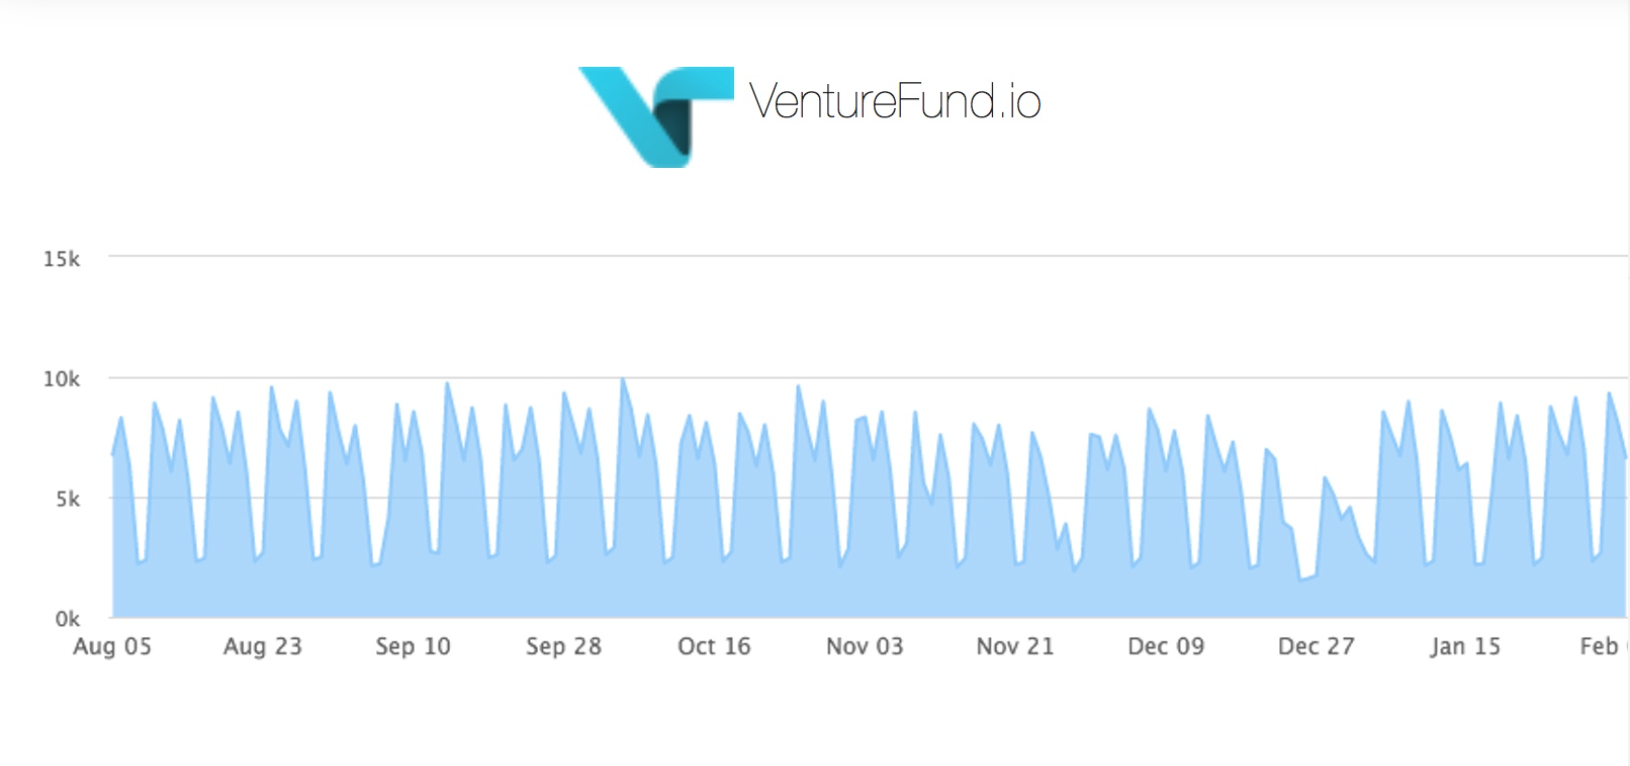 RT @TheNextWeb: Venturefund.io lets startups show investors their traction in real-time https://t.co/FXpqCjyeWH https://t.co/8gfUV8LFXa